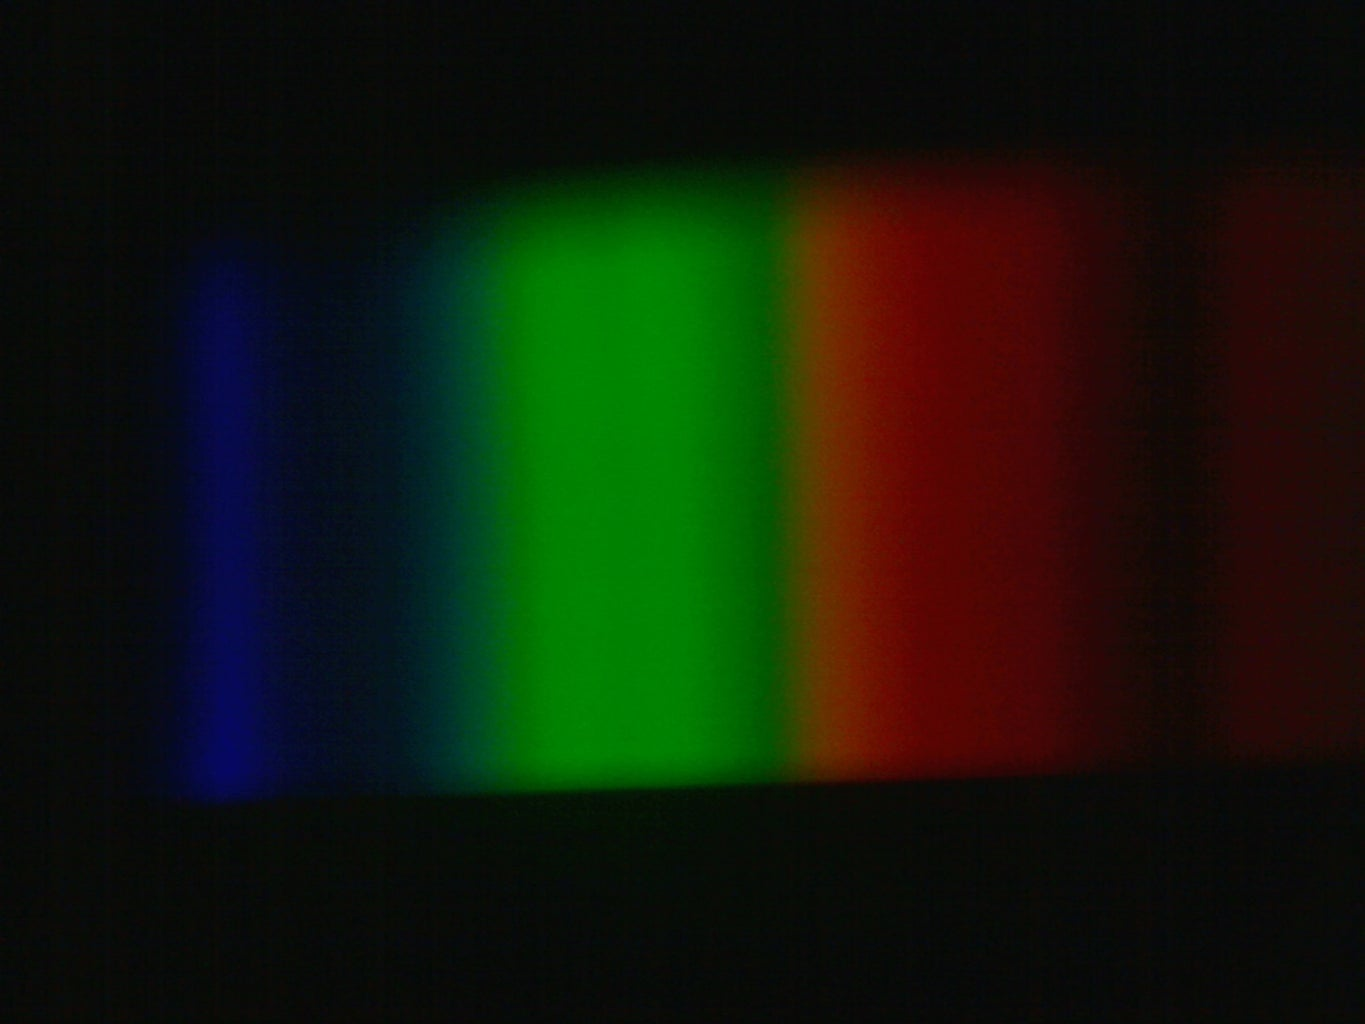 Absorption Spectra